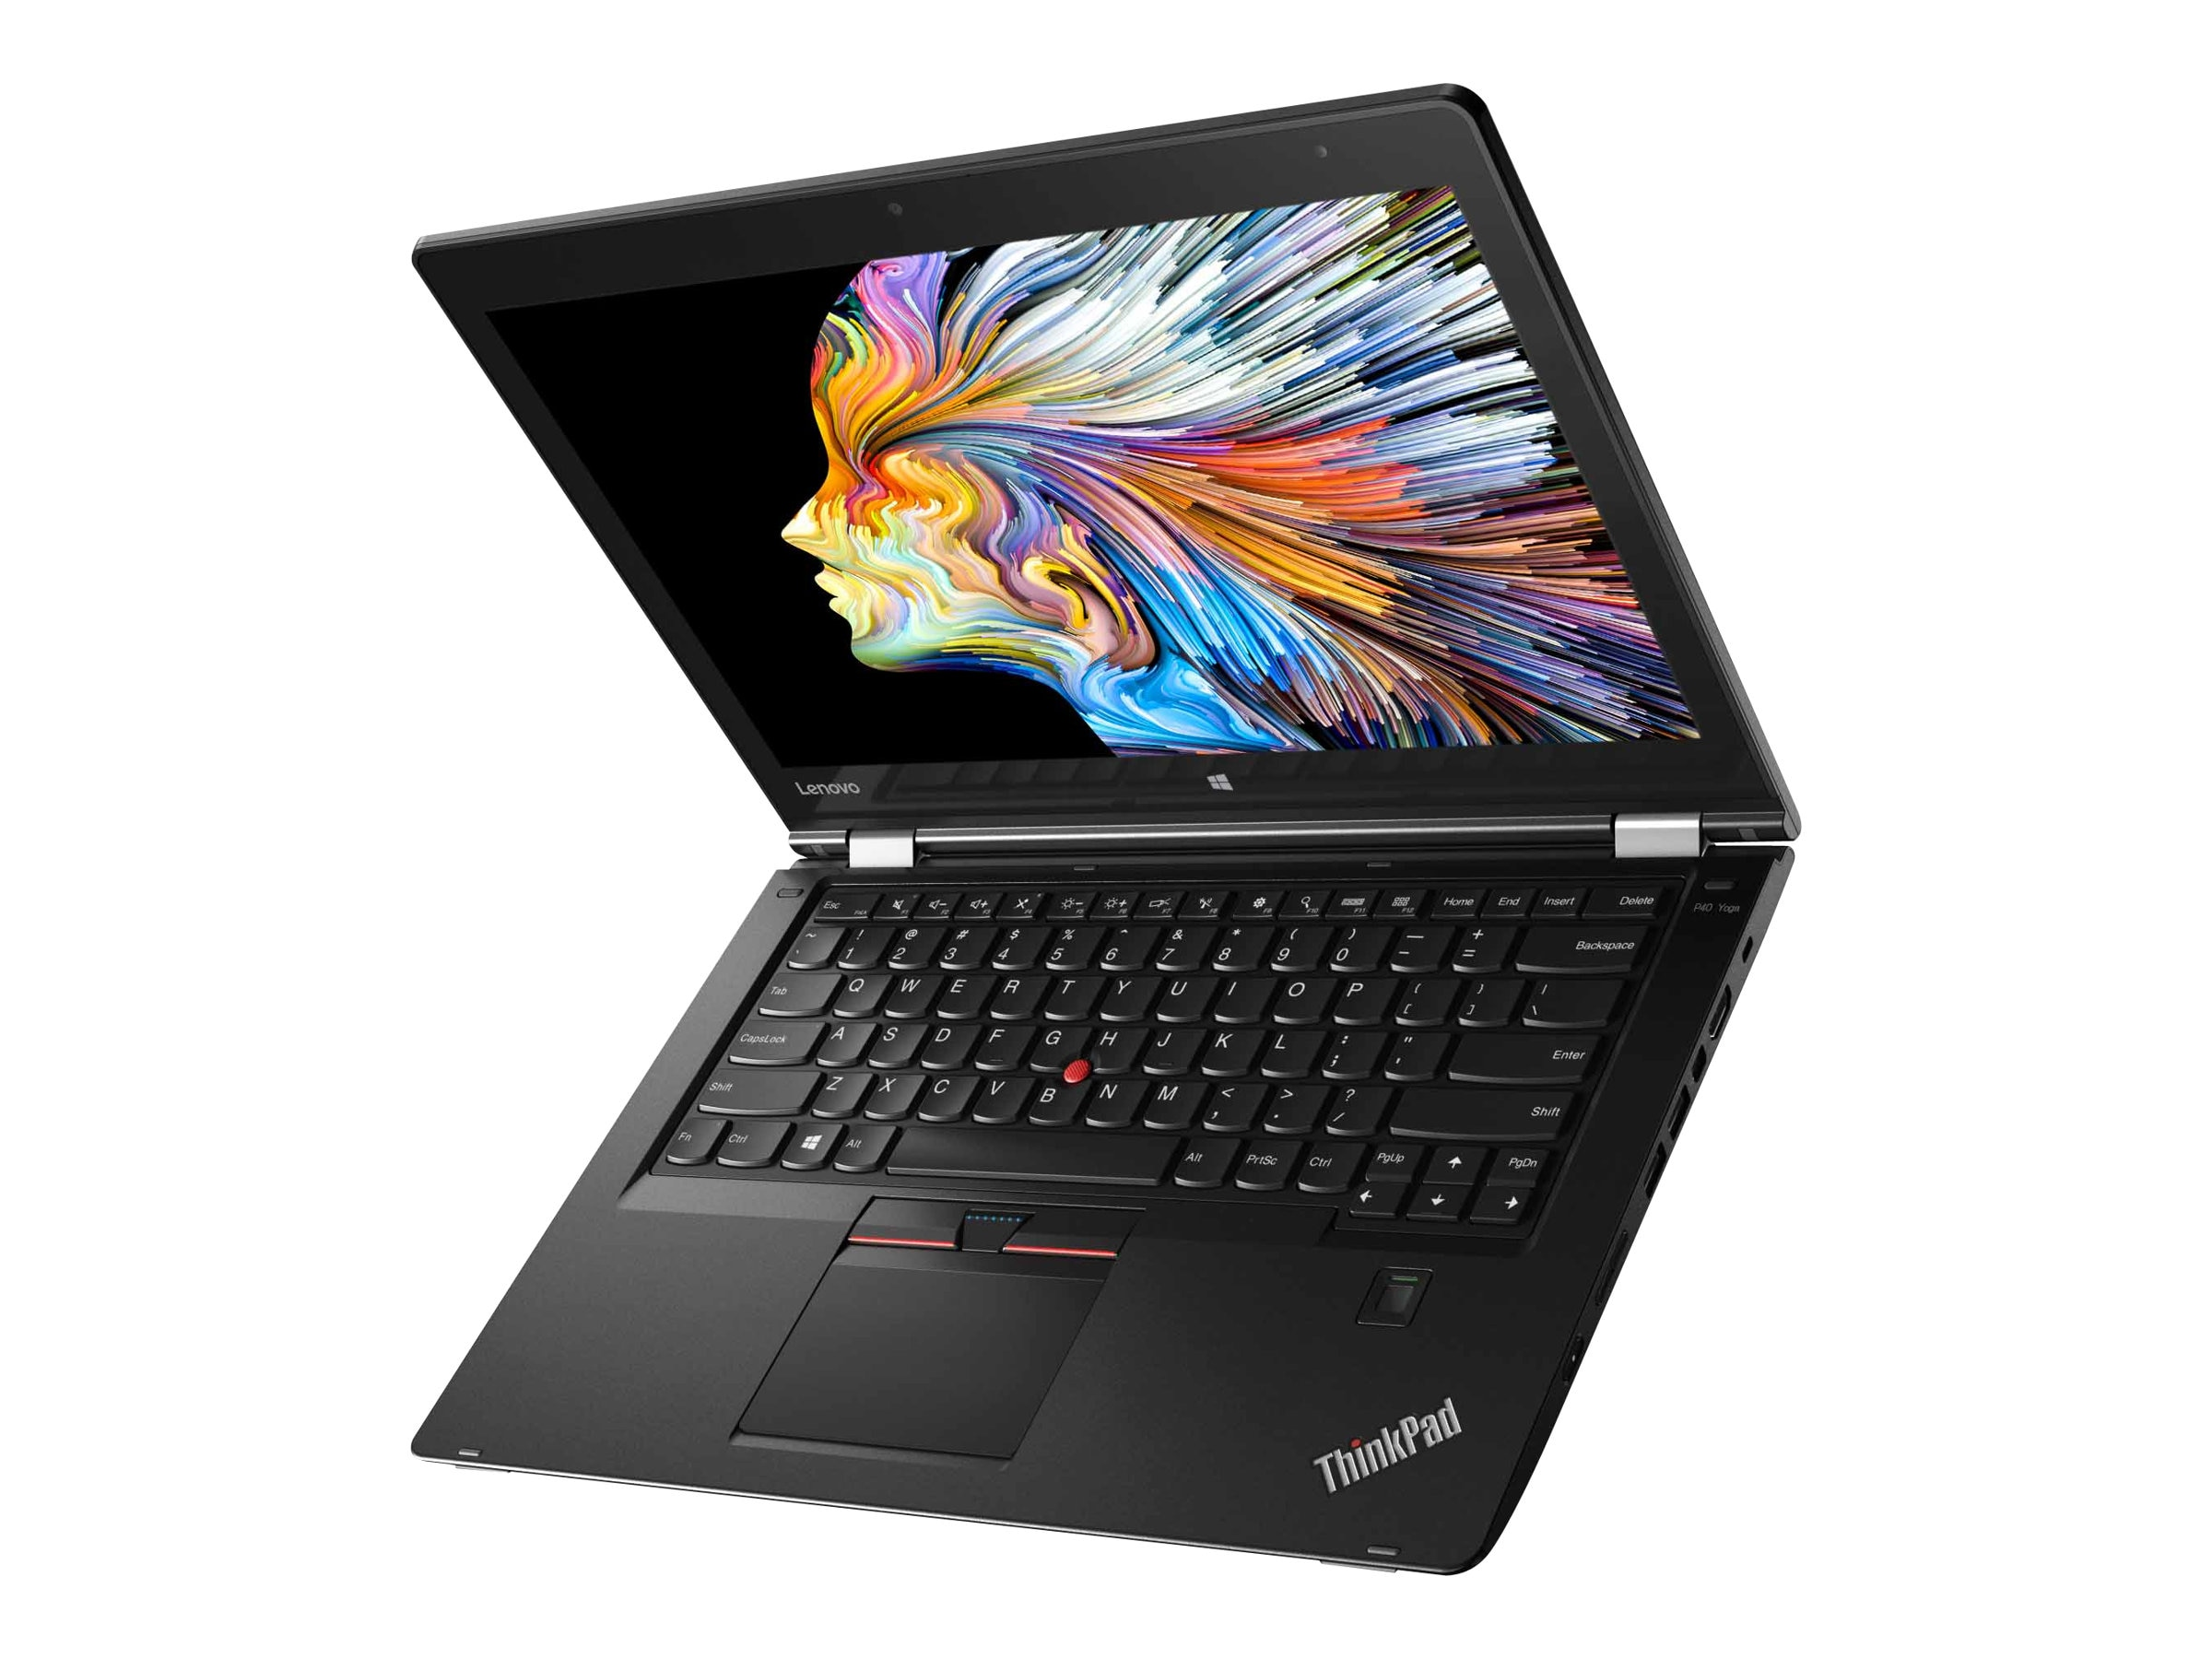 Lenovo TopSeller ThinkPad P40 Yoga Core i7-6500U 2.5GHz 8GB 256GB OPAL2 ac BT FR WC Pen 14 FHD MT W10P64, 20GQ000BUS, 31188552, Workstations - Mobile